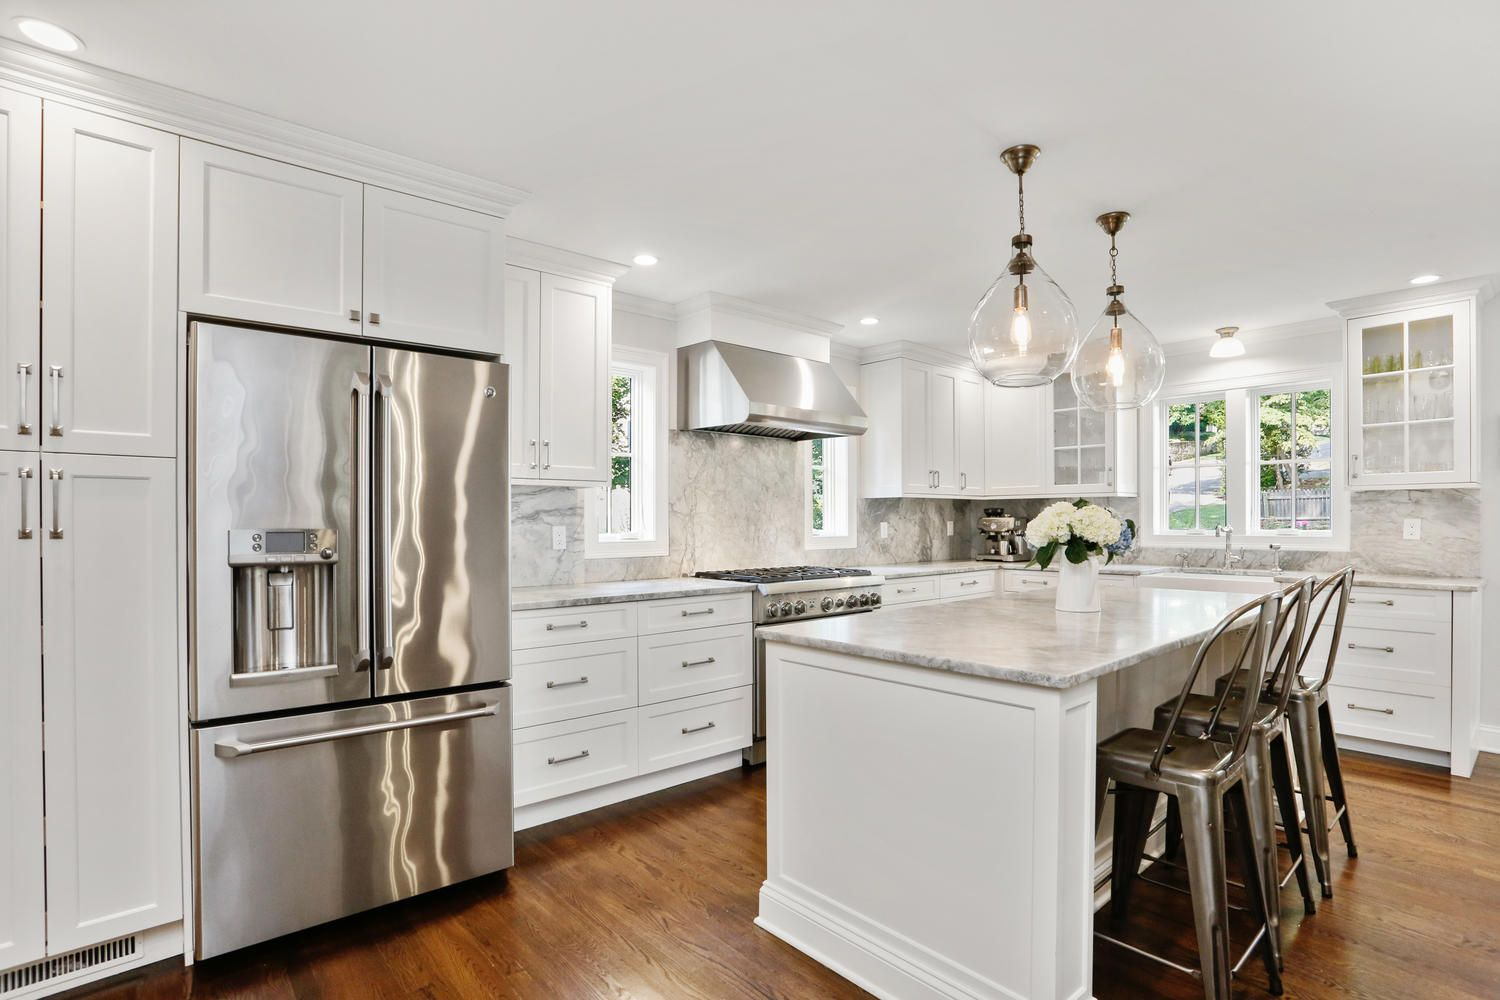 Fairfield Home For Sale 1146 Valley Road In 2020 White Cabinetry Kitchen Remodel Home